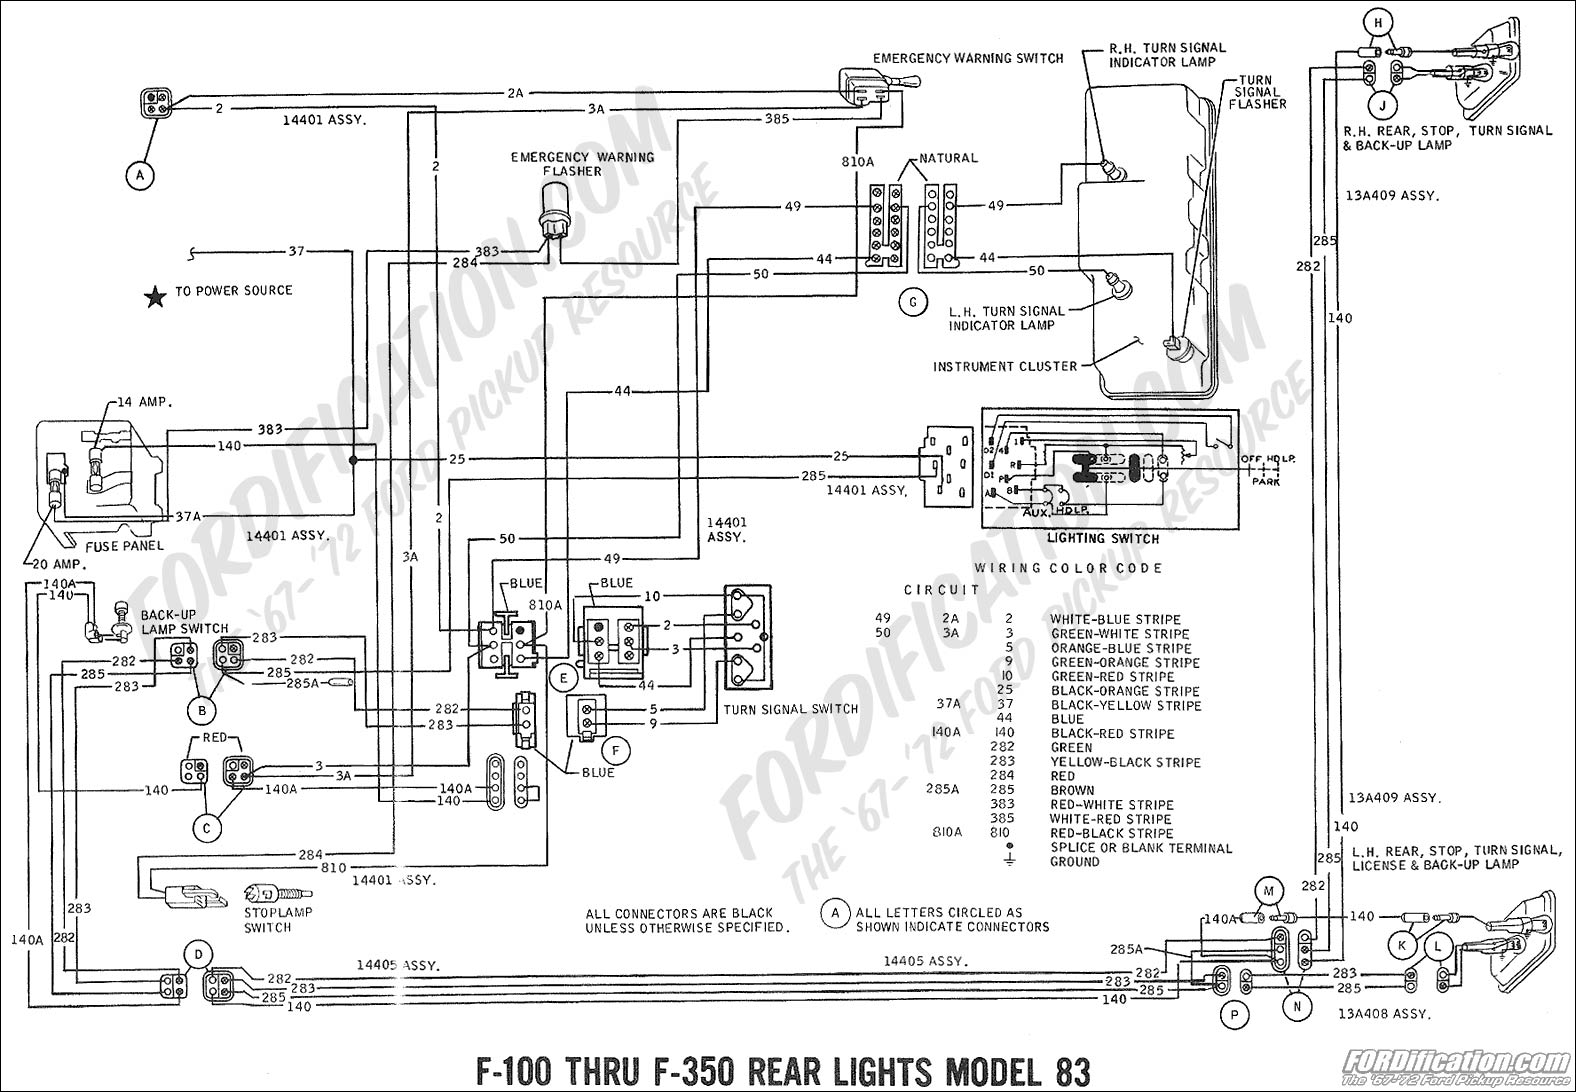 f800 wiring diagram, f450 wiring diagram, ford wiring diagram, truck wiring diagram, f150 wiring diagram, f650 wiring diagram, fusion wiring diagram, grand wagoneer wiring diagram, c-max wiring diagram, model wiring diagram, fairmont wiring diagram, 2006 silverado light wiring diagram, l9000 wiring diagram, e300 wiring diagram, f500 wiring diagram, f350 wiring diagram, sport trac wiring diagram, sierra wiring diagram, van wiring diagram, aspire wiring diagram, on f550 super duty wiring diagram